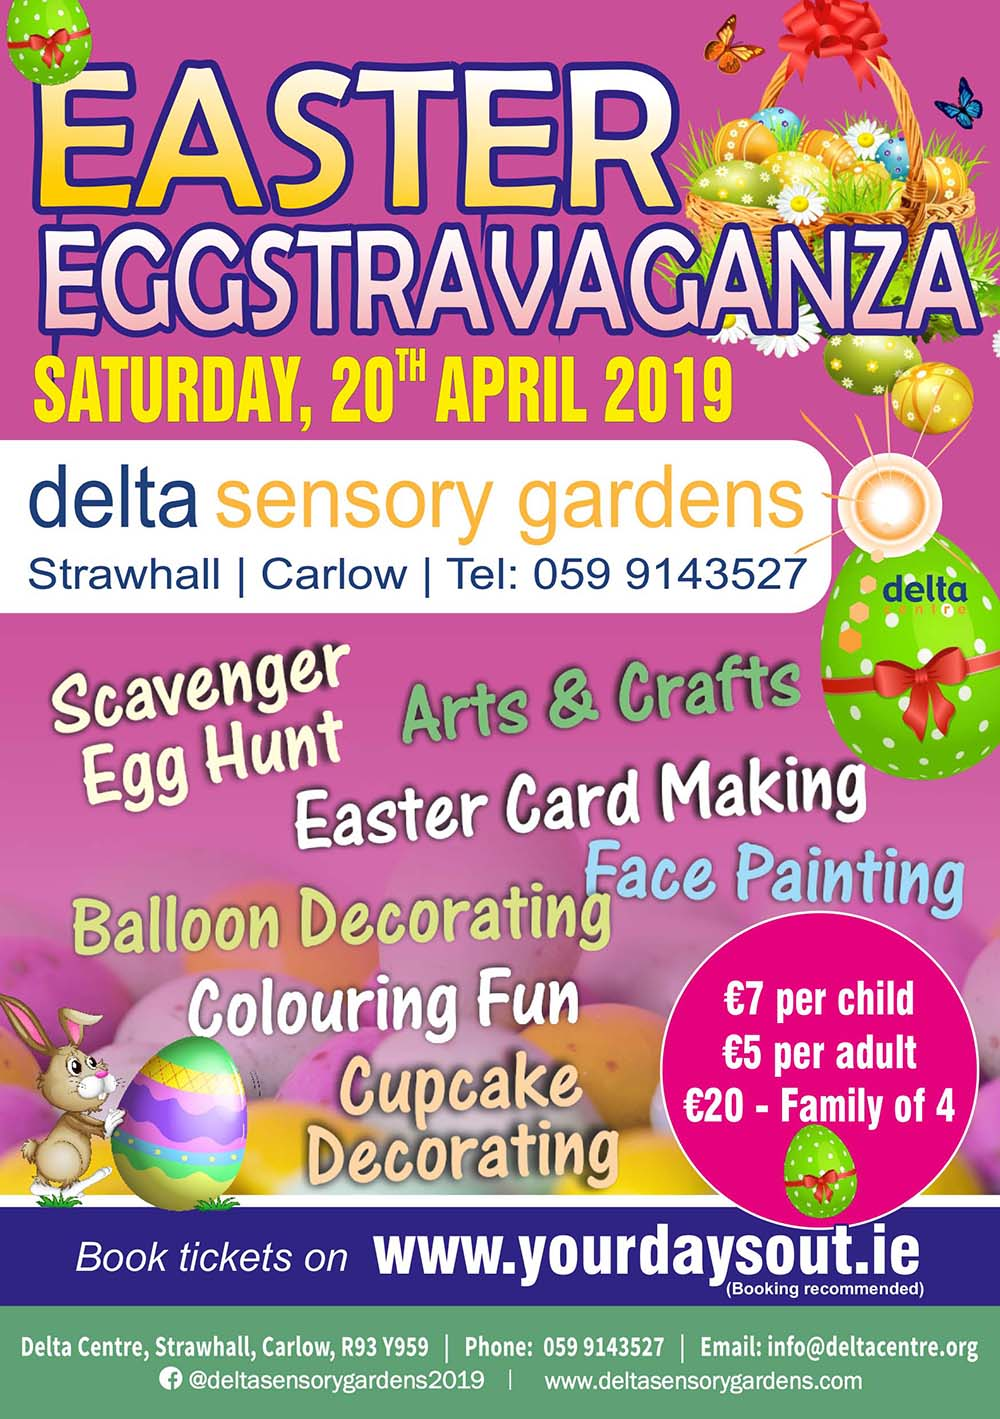 Delta Sensory Gardens | Easter Egg Hunt | Things to do in Carlow | YourDaysOut